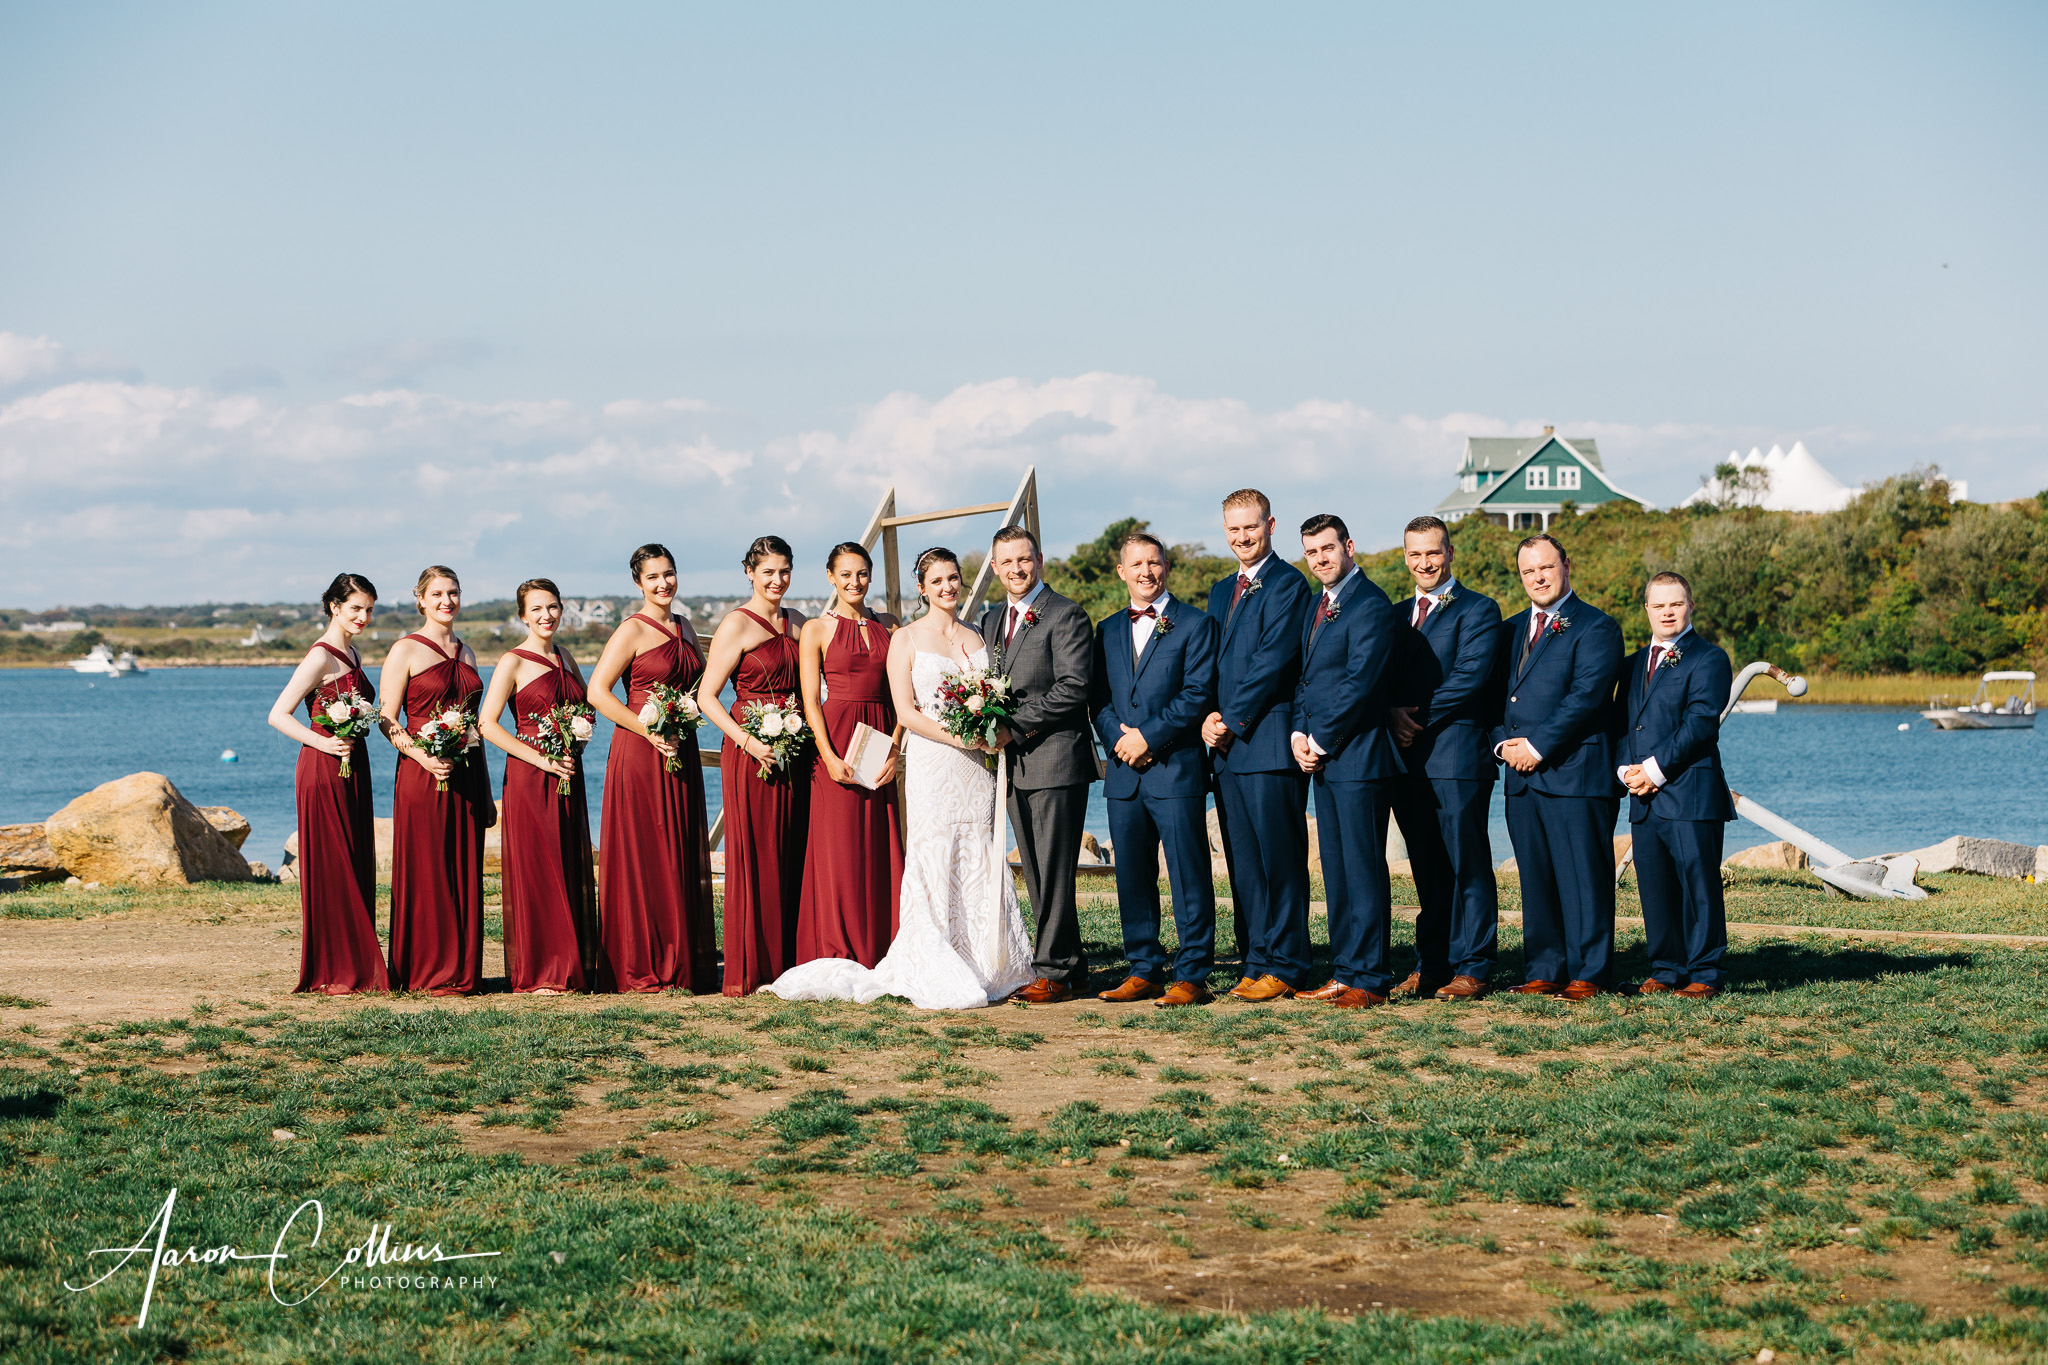 Sunny portrait of the wedding party at Block Island Maritime Institute overlooking New Harbor.